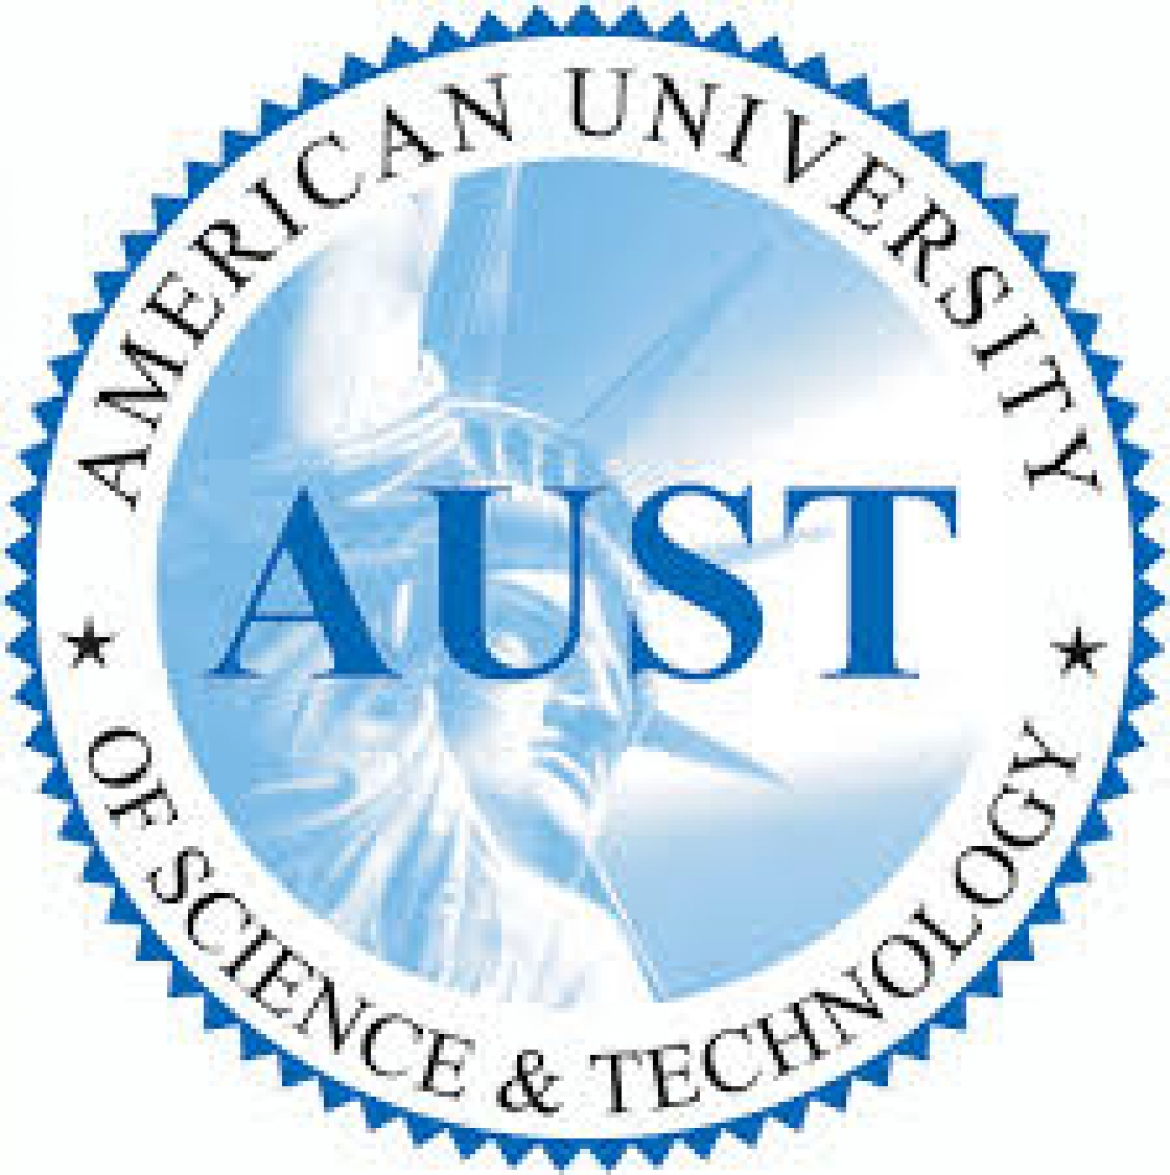 American University of Science & Technology, AUST